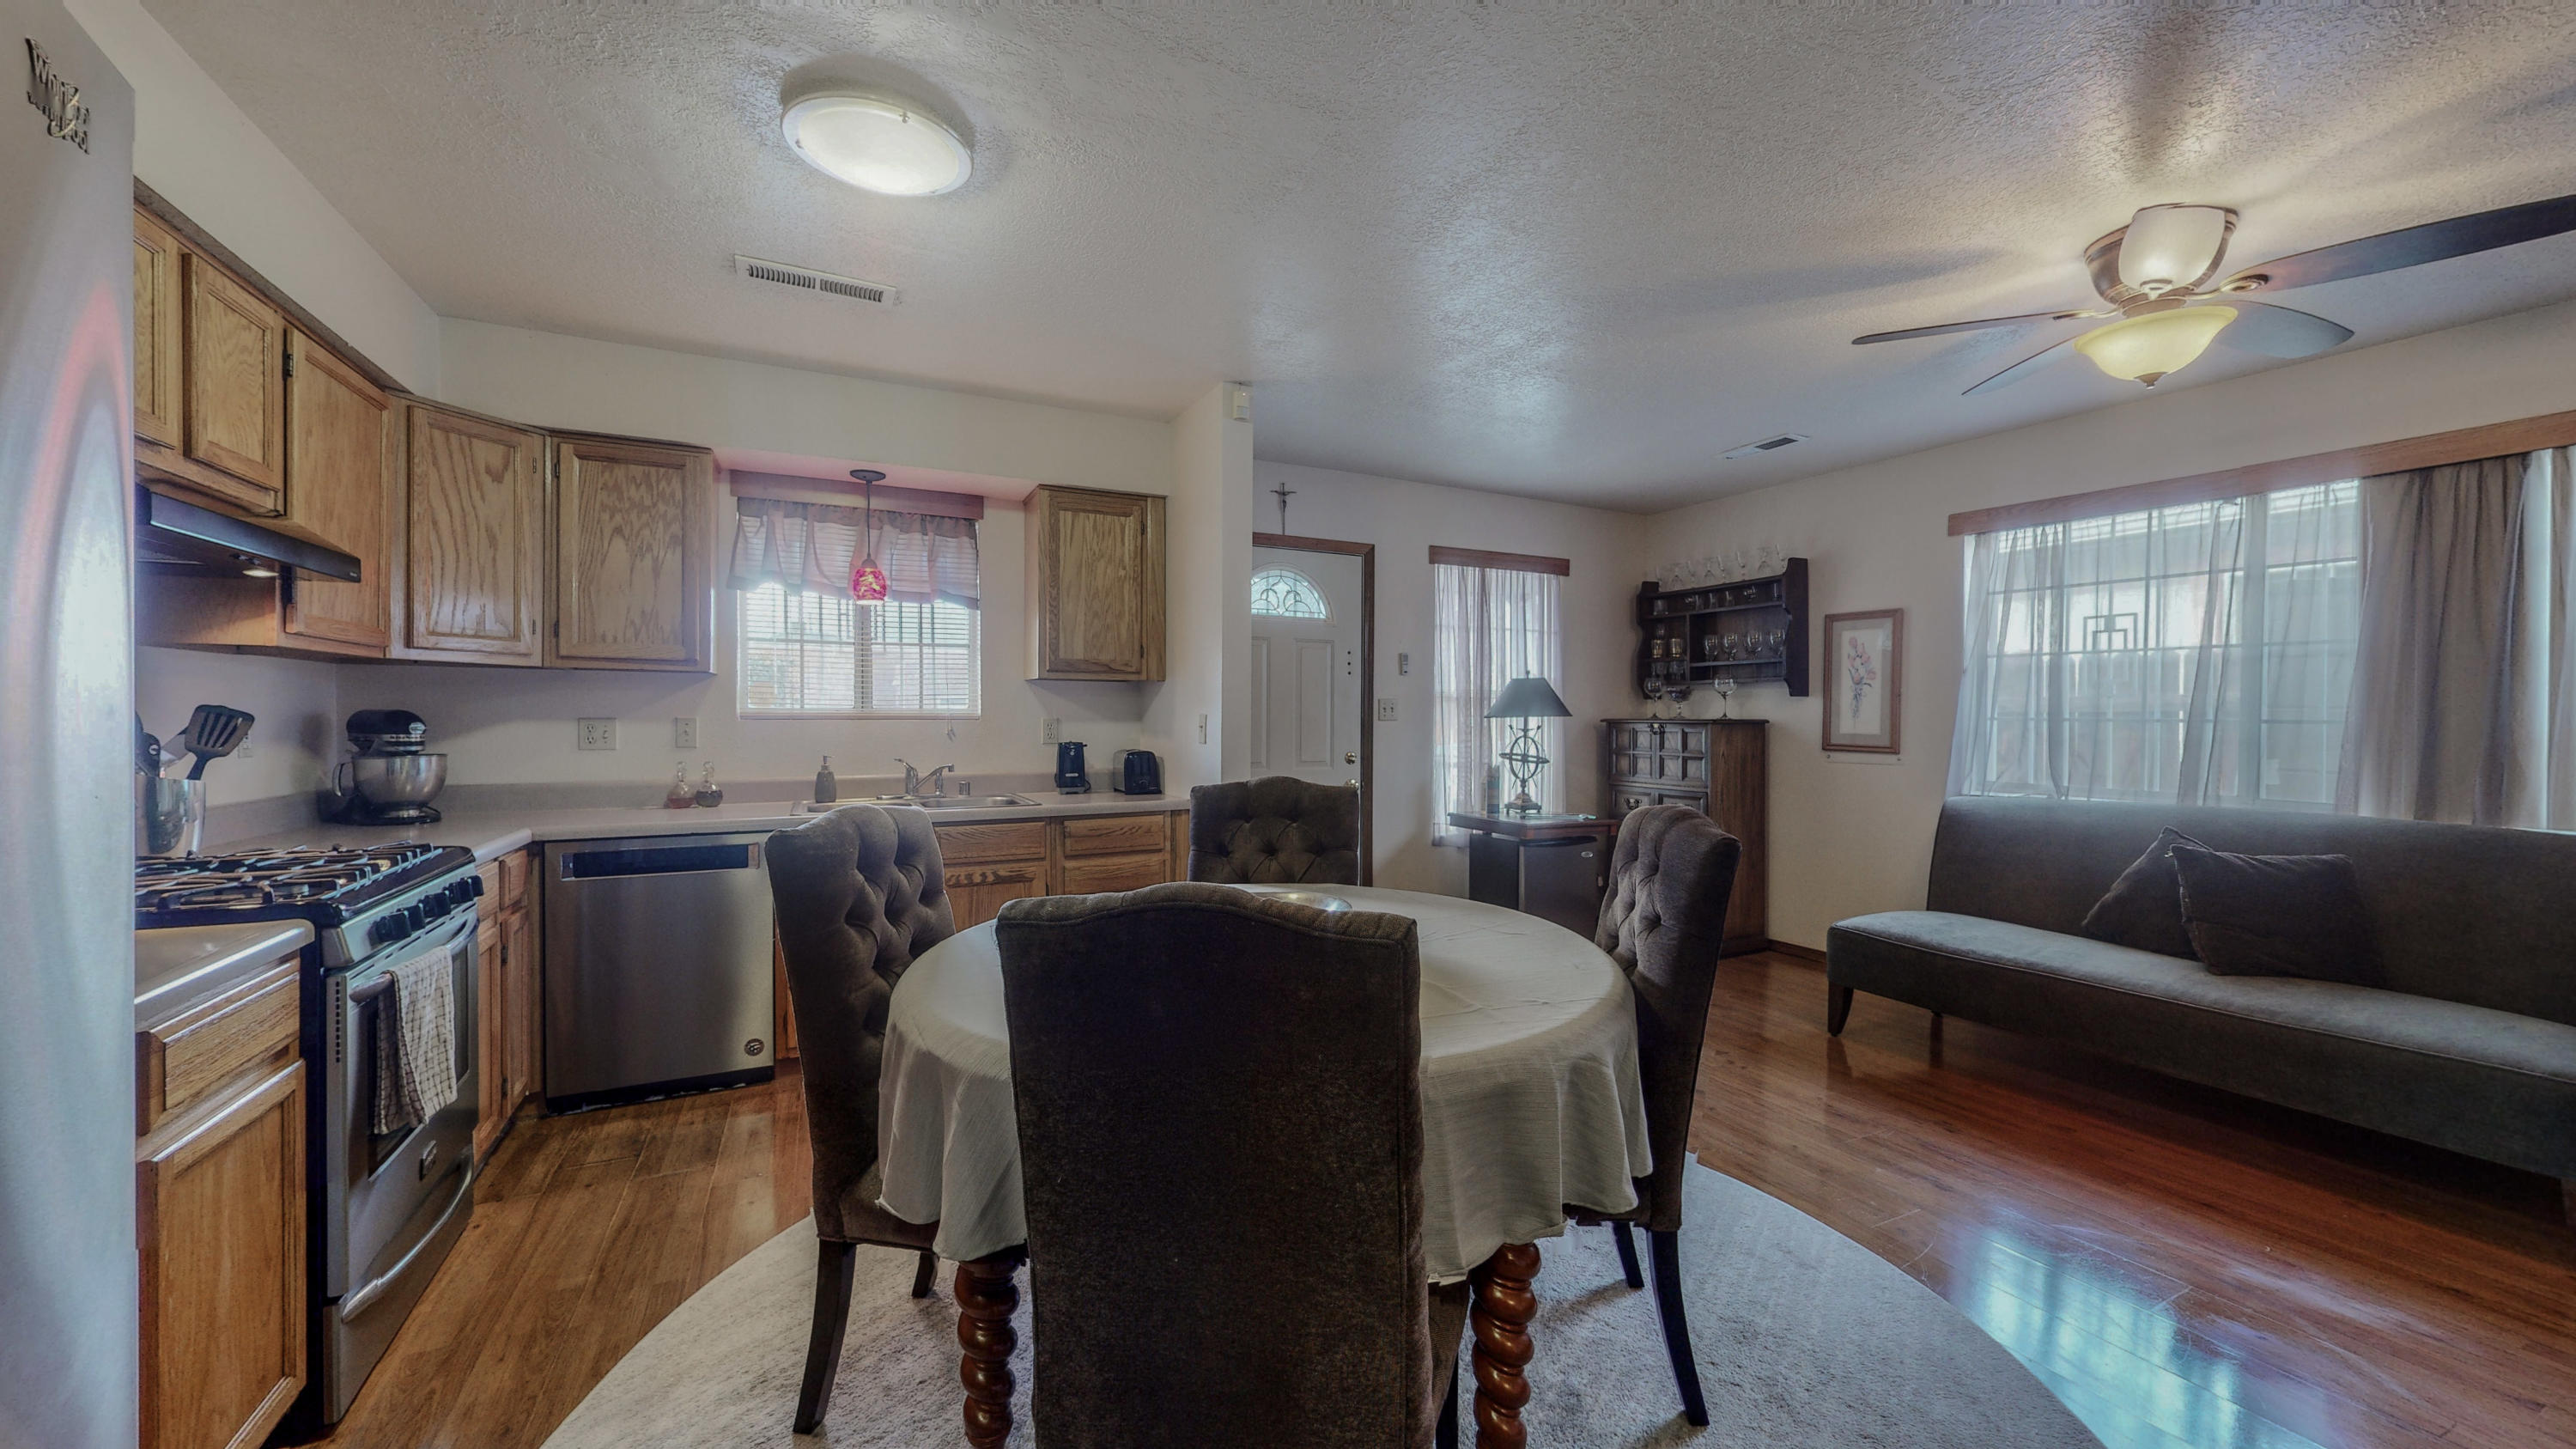 Great 2 bedroom home in Barelas neighborhood close to the Barelas Coffee house and the Hispano Cultural Center.   The home  features a open floor plan to maximize living and kitchen room.  The main suite has access to the back patio and a walkin closet.This home is a must see!